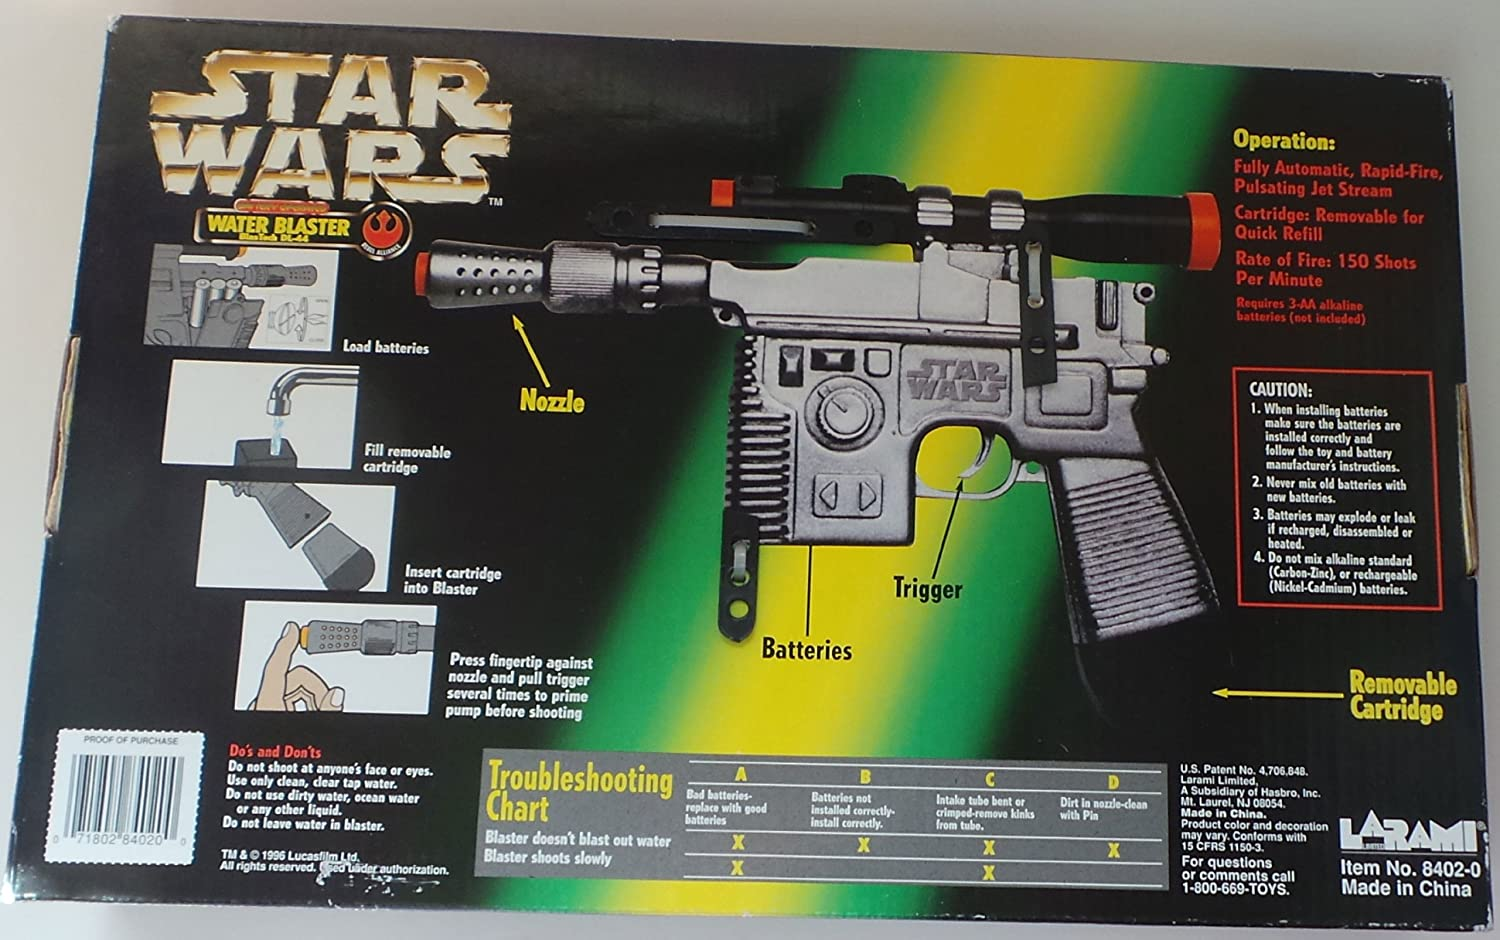 Star Wars Power of the Force Battery Operated Water Blaster Kenner SG/_B000MFDG1I/_US